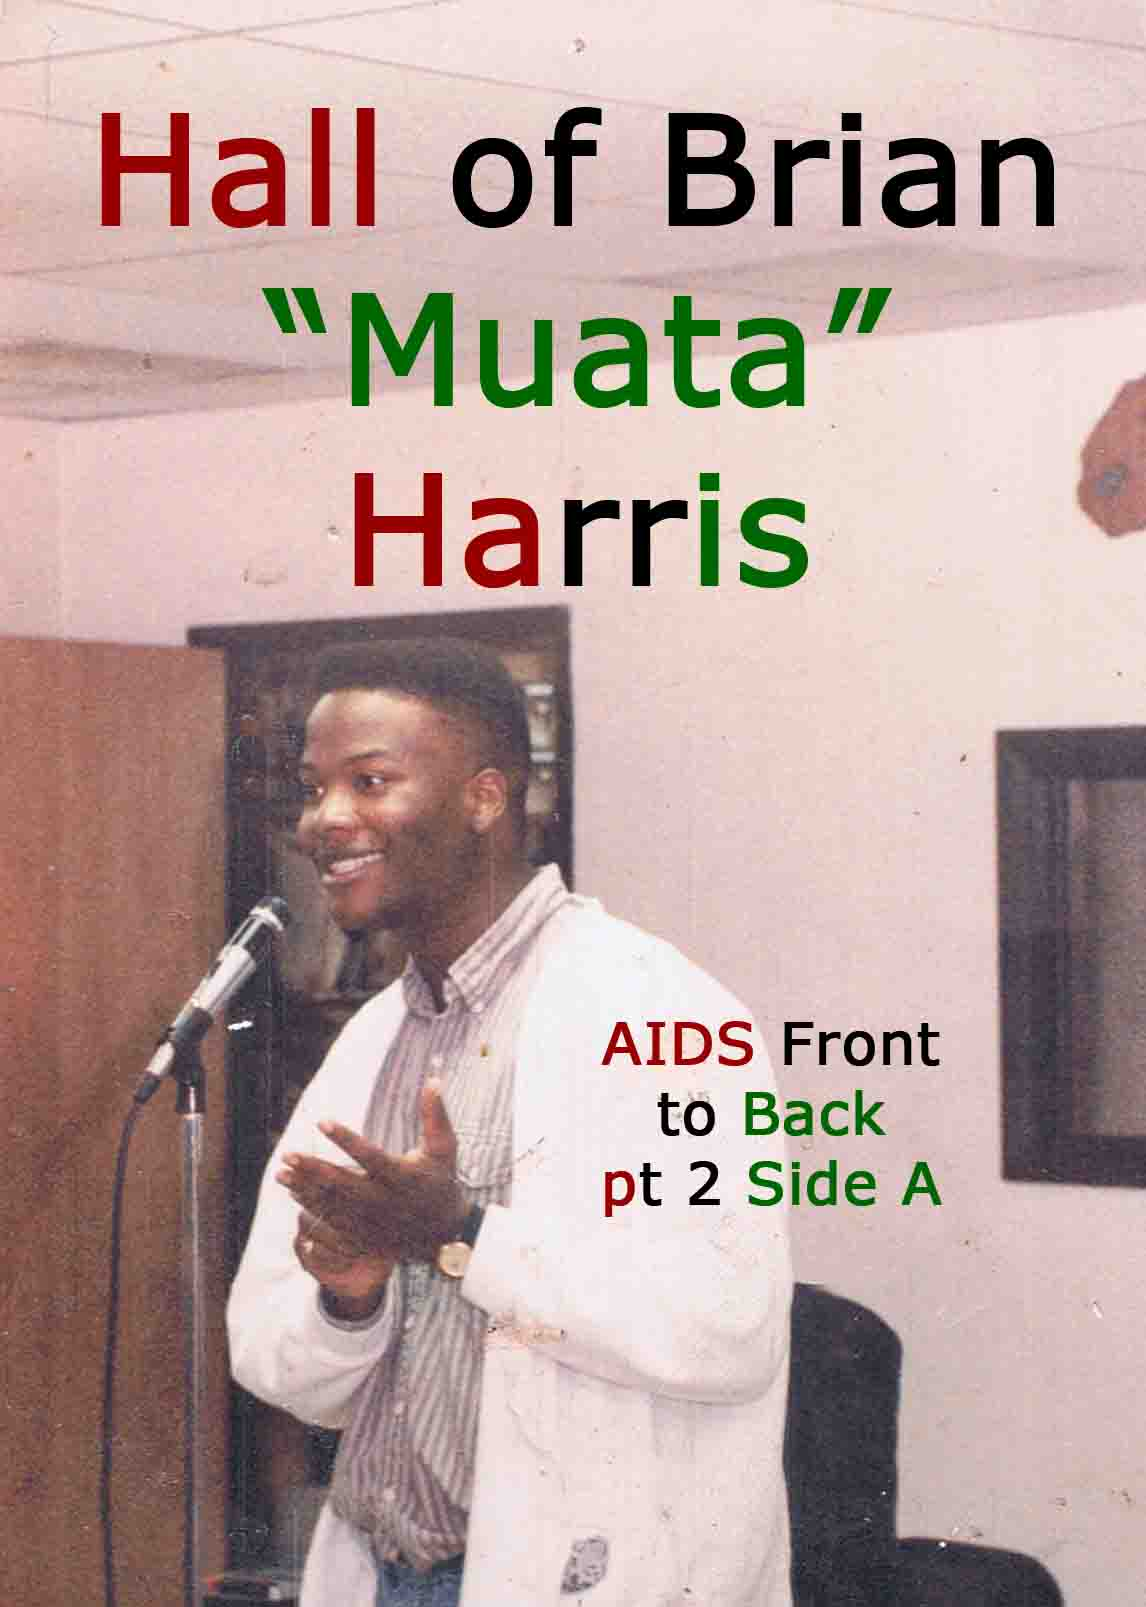 AIDS front to back pt 2 side A